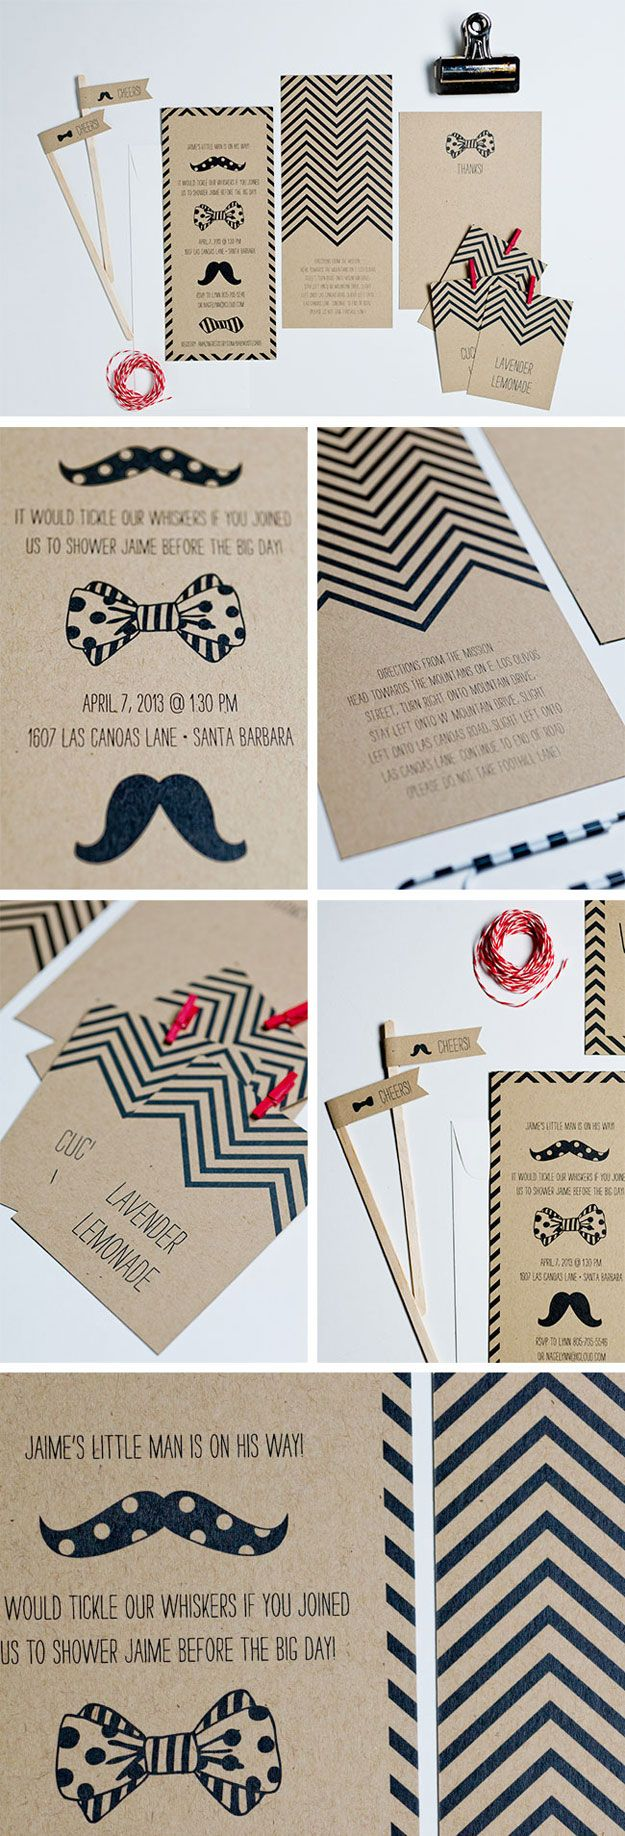 Mustache & Bowtie Baby Shower- love the bowtie and staches! !!